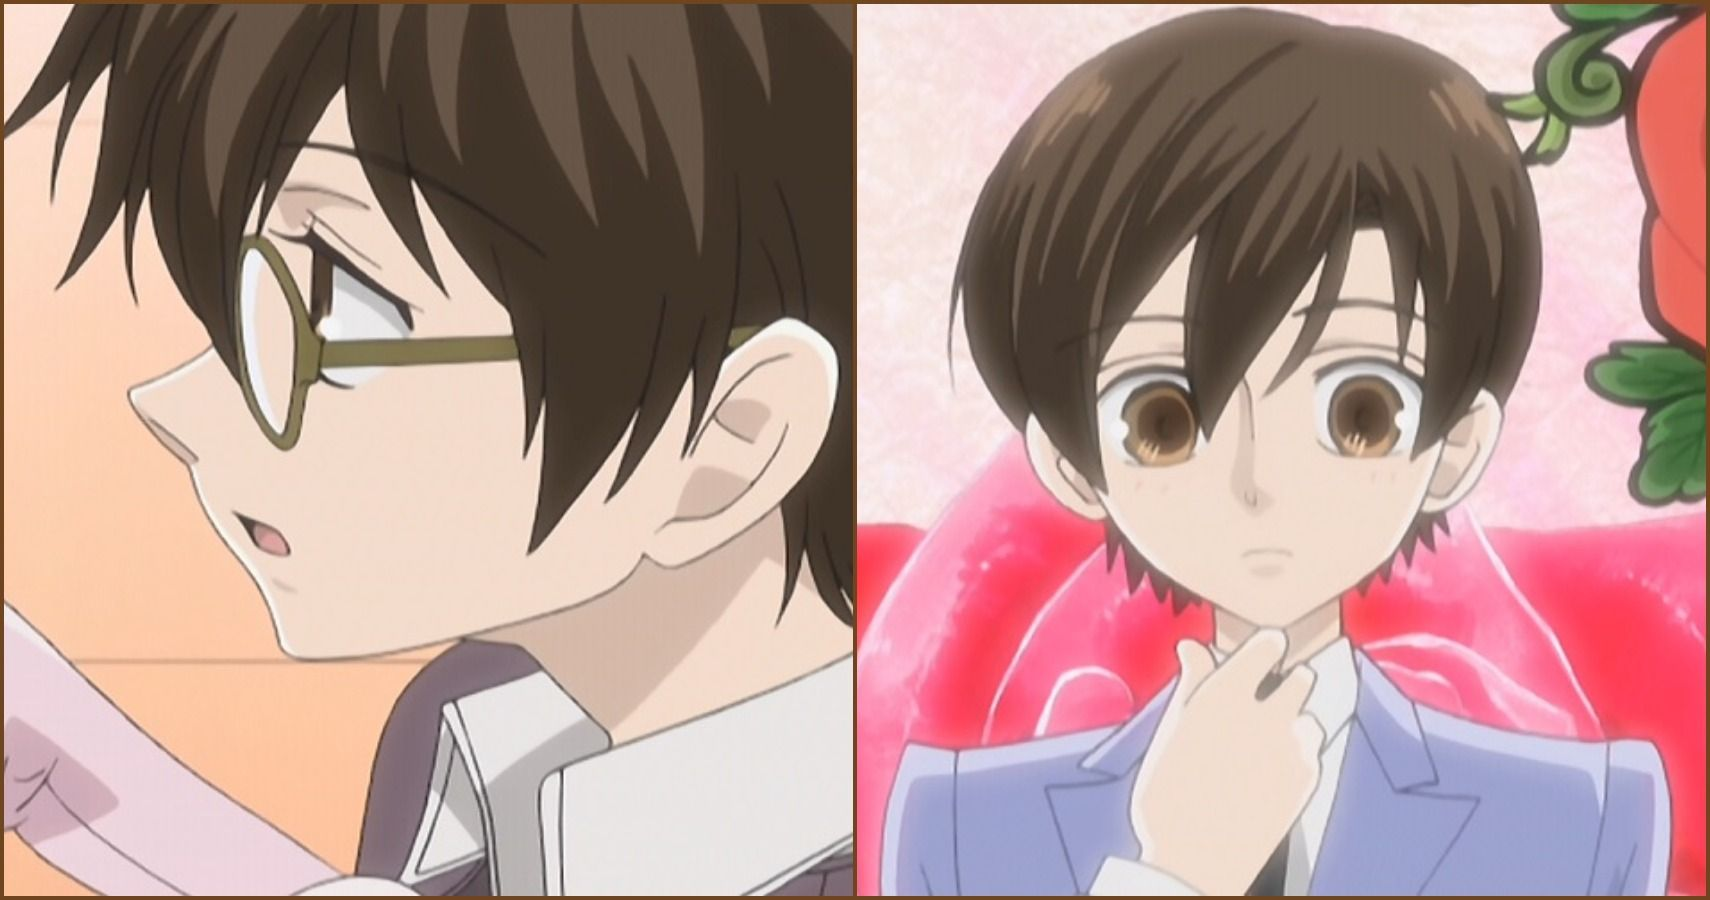 Ouran High School Host Club 10 Haruhi Fujioka Facts Most Fans Don T Know You can use left (,) and right (.) keyboard keys or click on the the beginning after the end ch.79 image to. ouran high school host club 10 haruhi